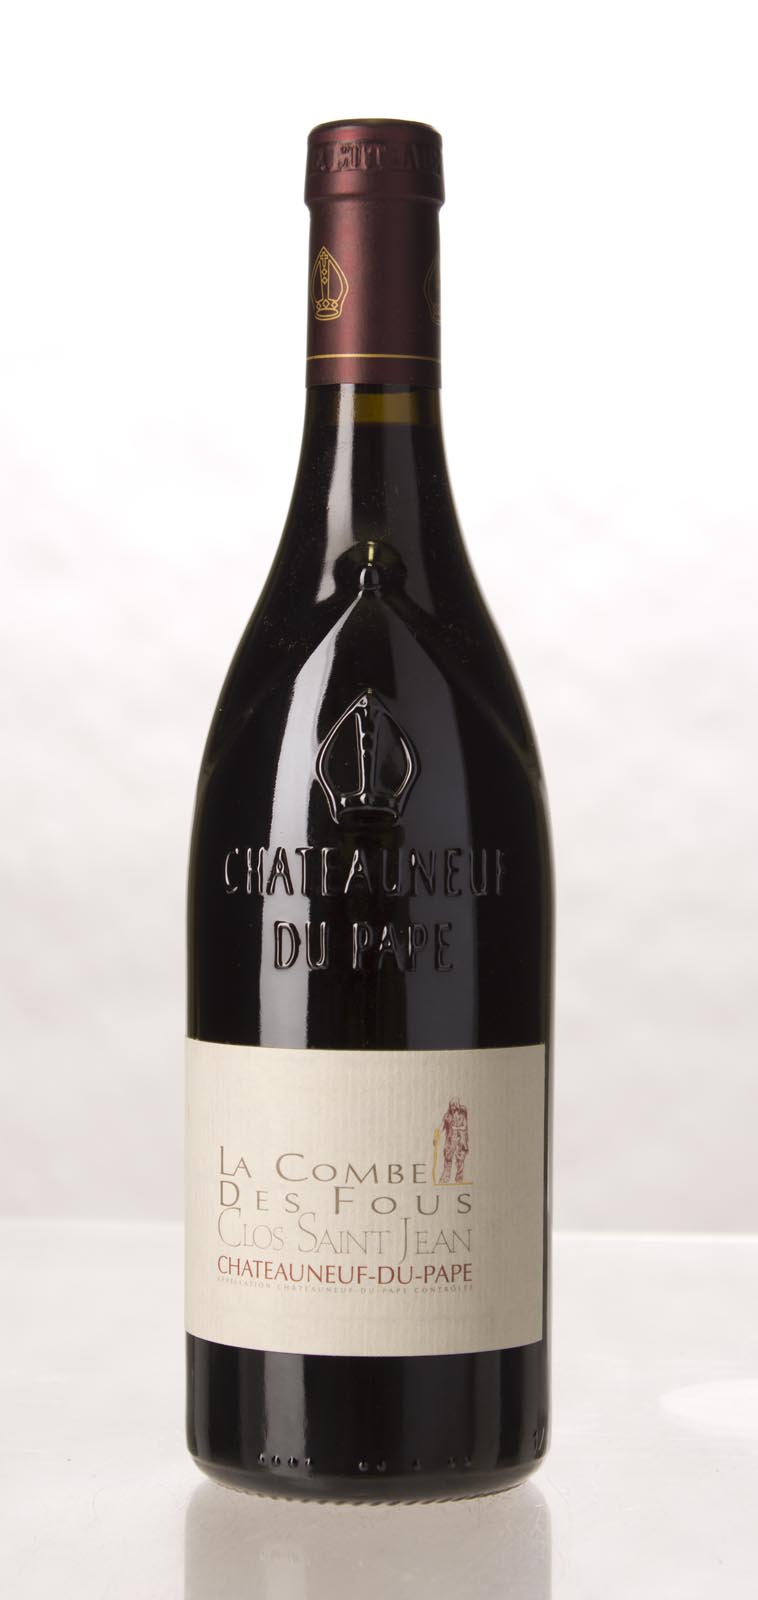 Clos St. Jean Chateauneuf du Pape la Combe des Fous 2006, 750mL (WA97) from The BPW - Merchants of rare and fine wines.